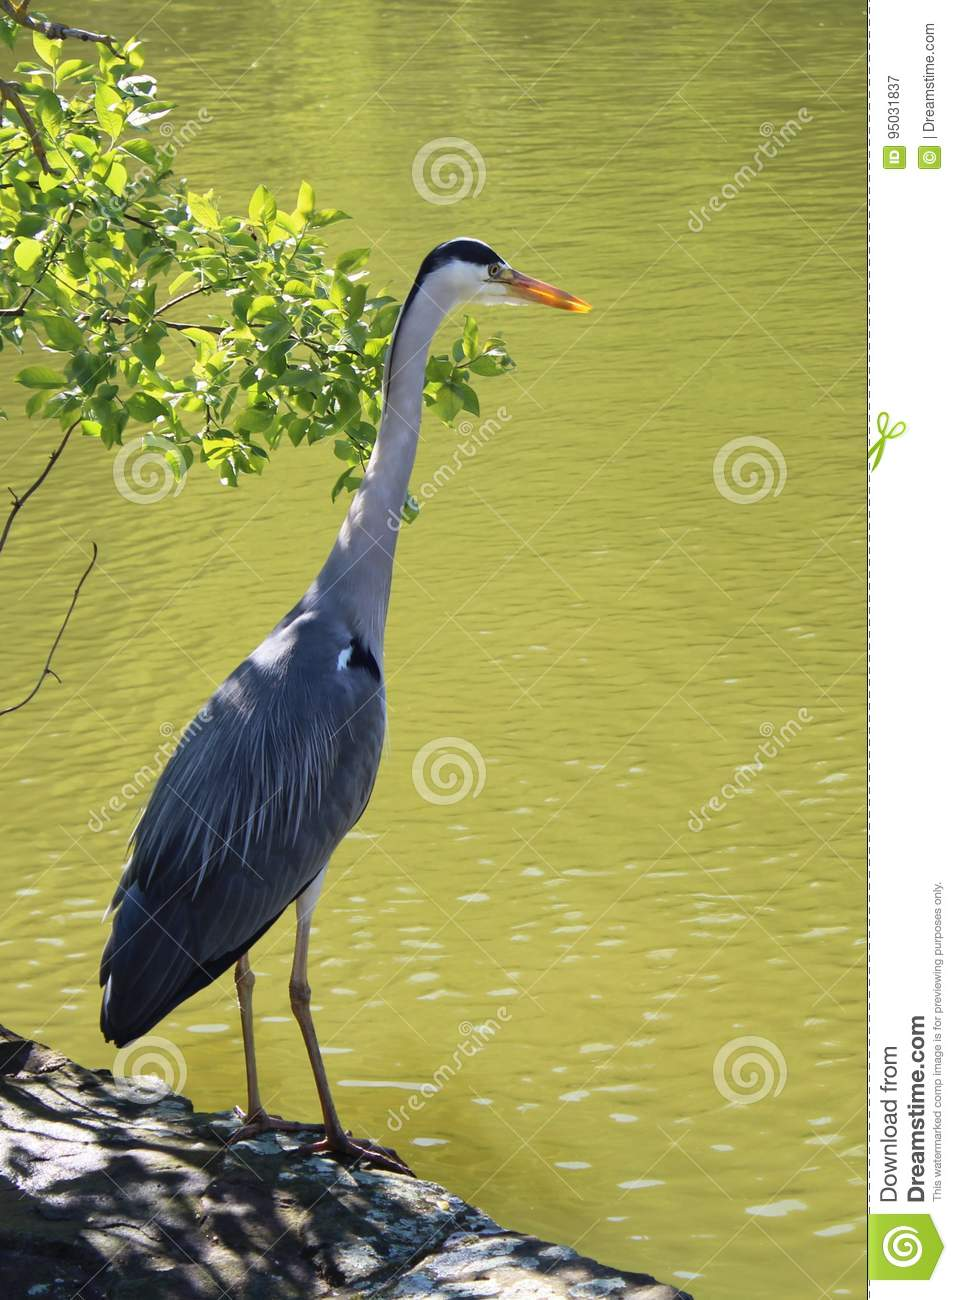 The Grey Heron is lurking for a fish